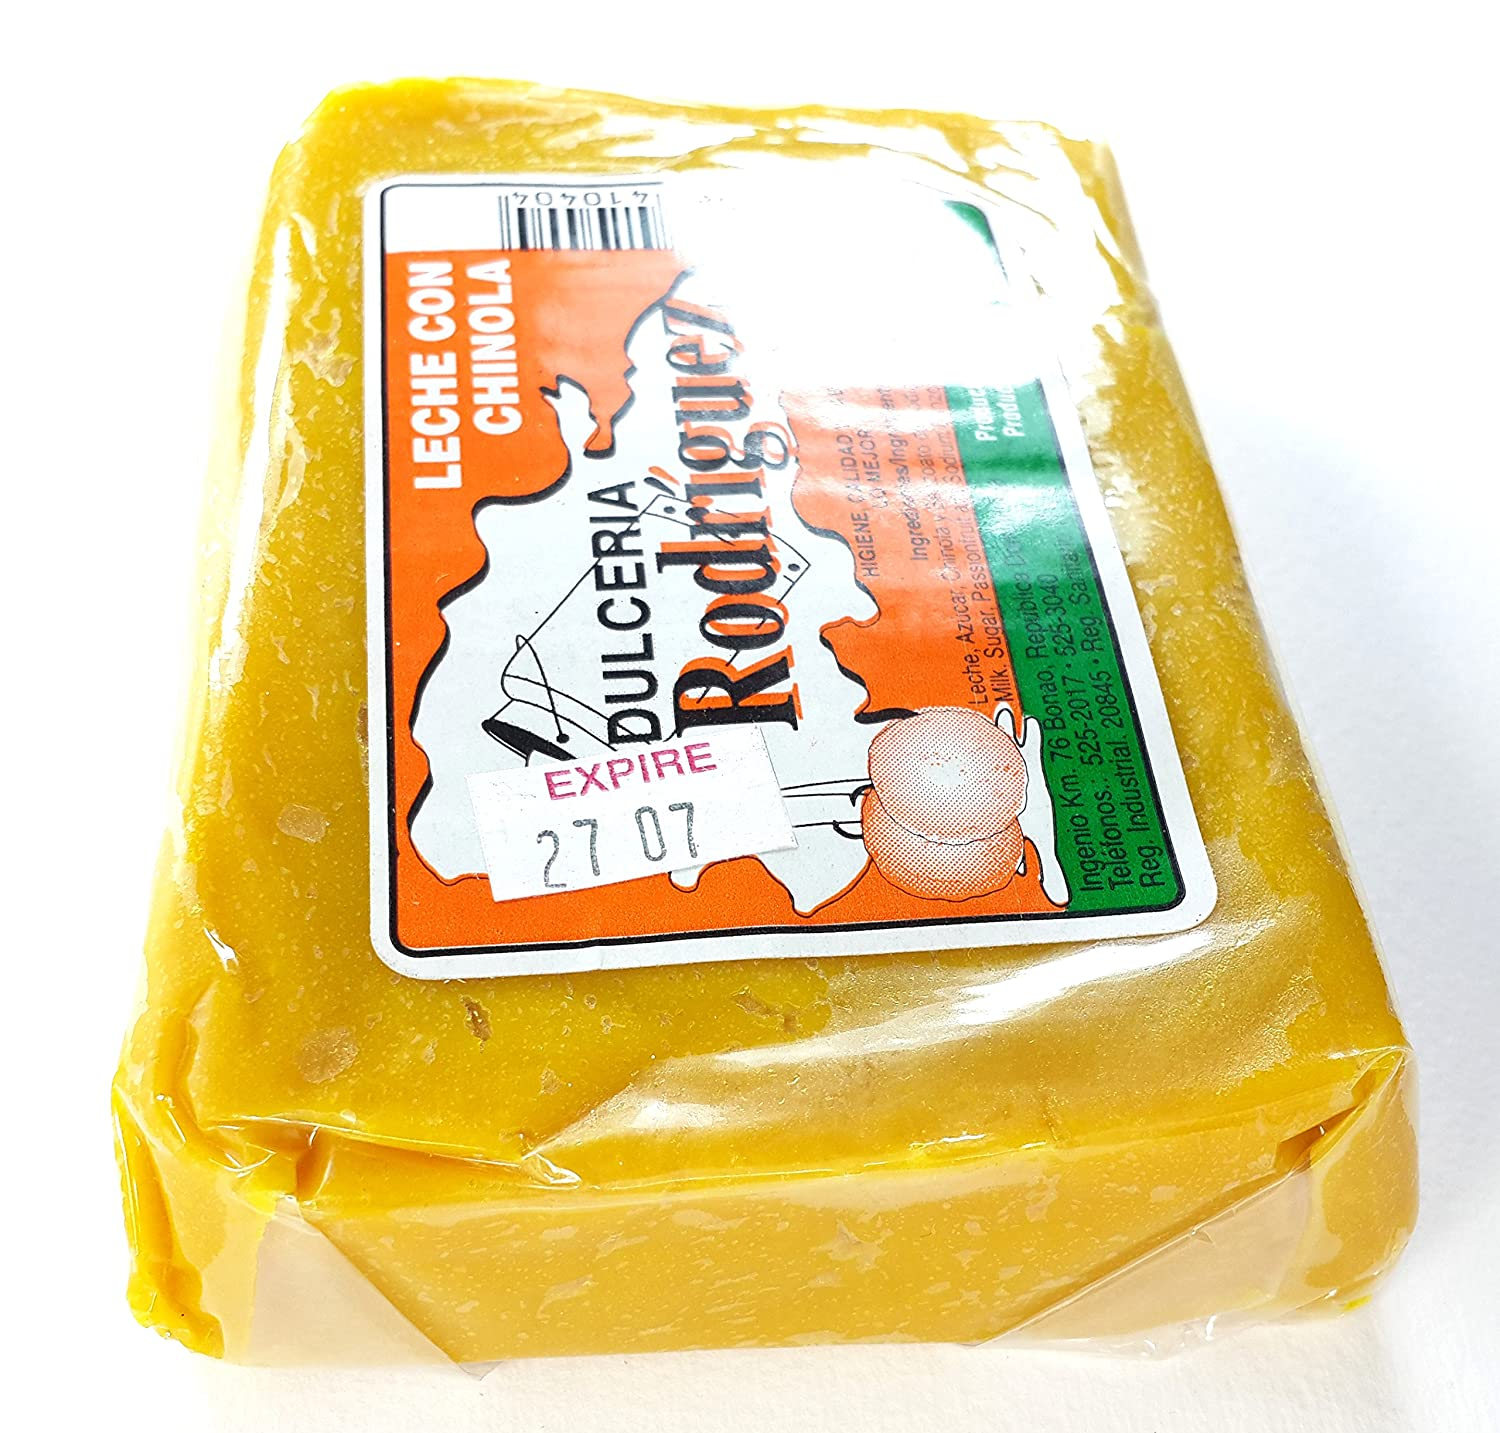 Amazon.com : Dominican Sweet Dessert Milk and Passionfruit Dulce Chinola Leche 3 Pack : Grocery & Gourmet Food